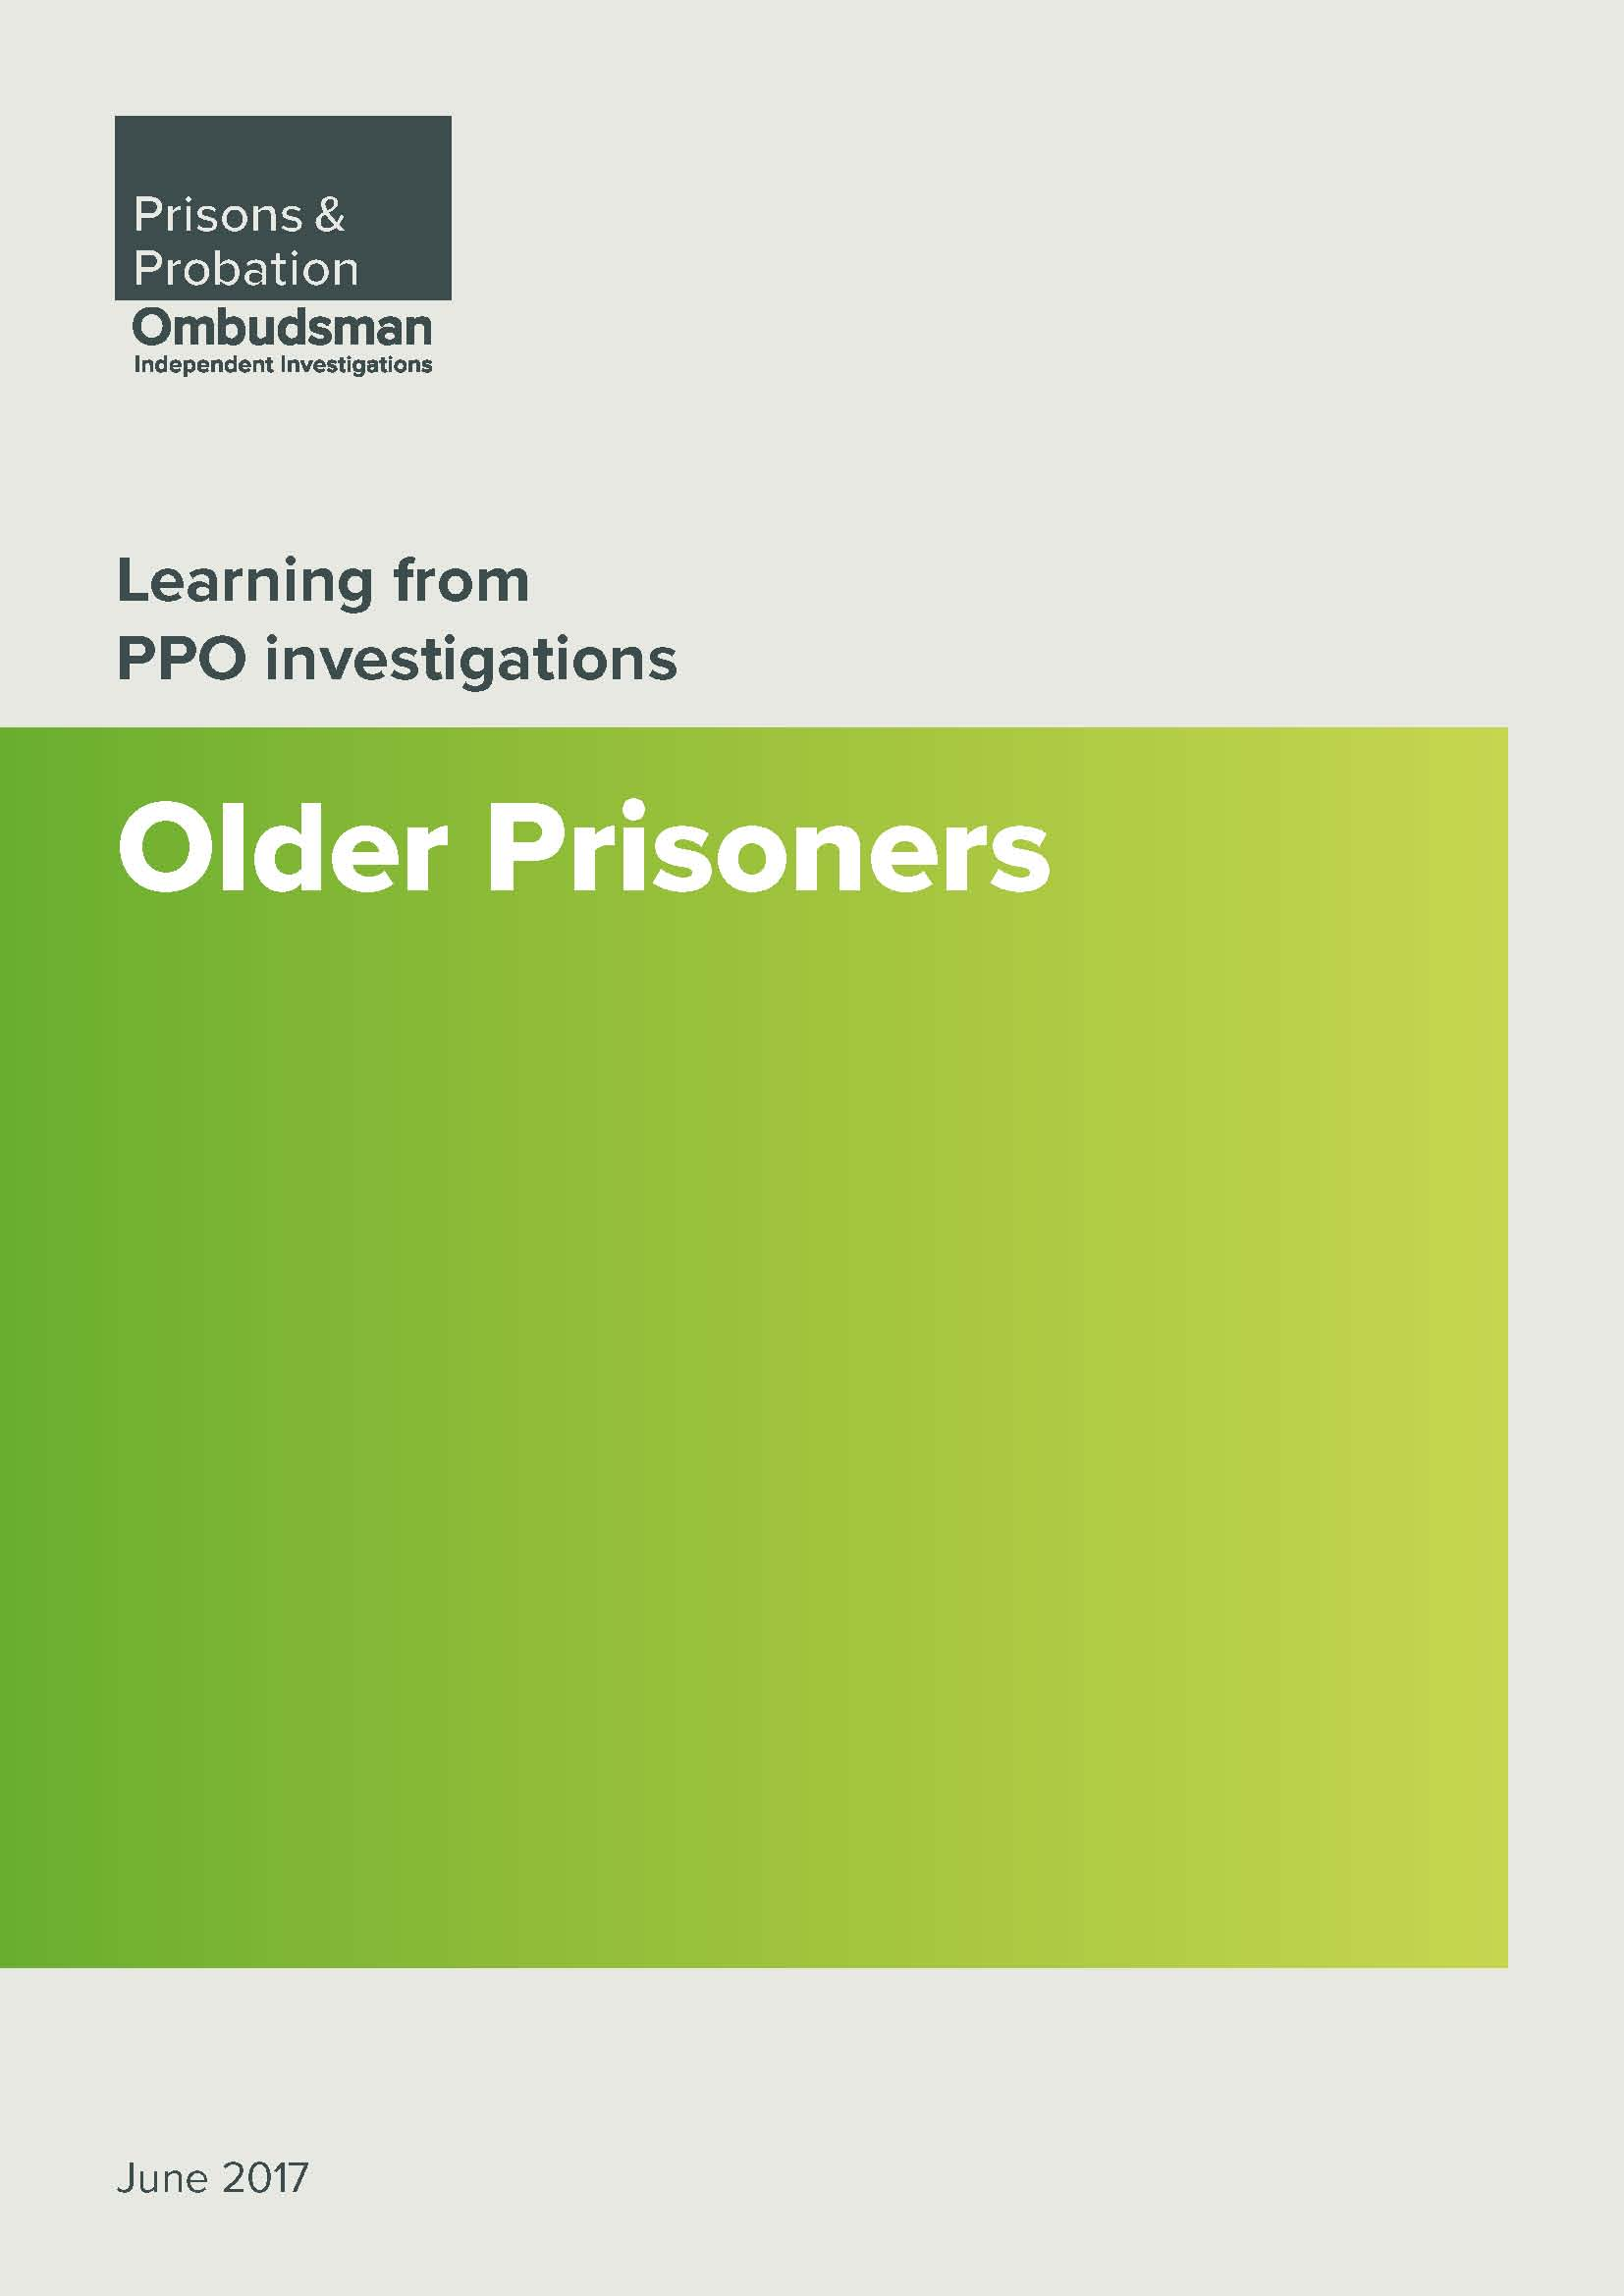 Download Older Prisoners Thematic